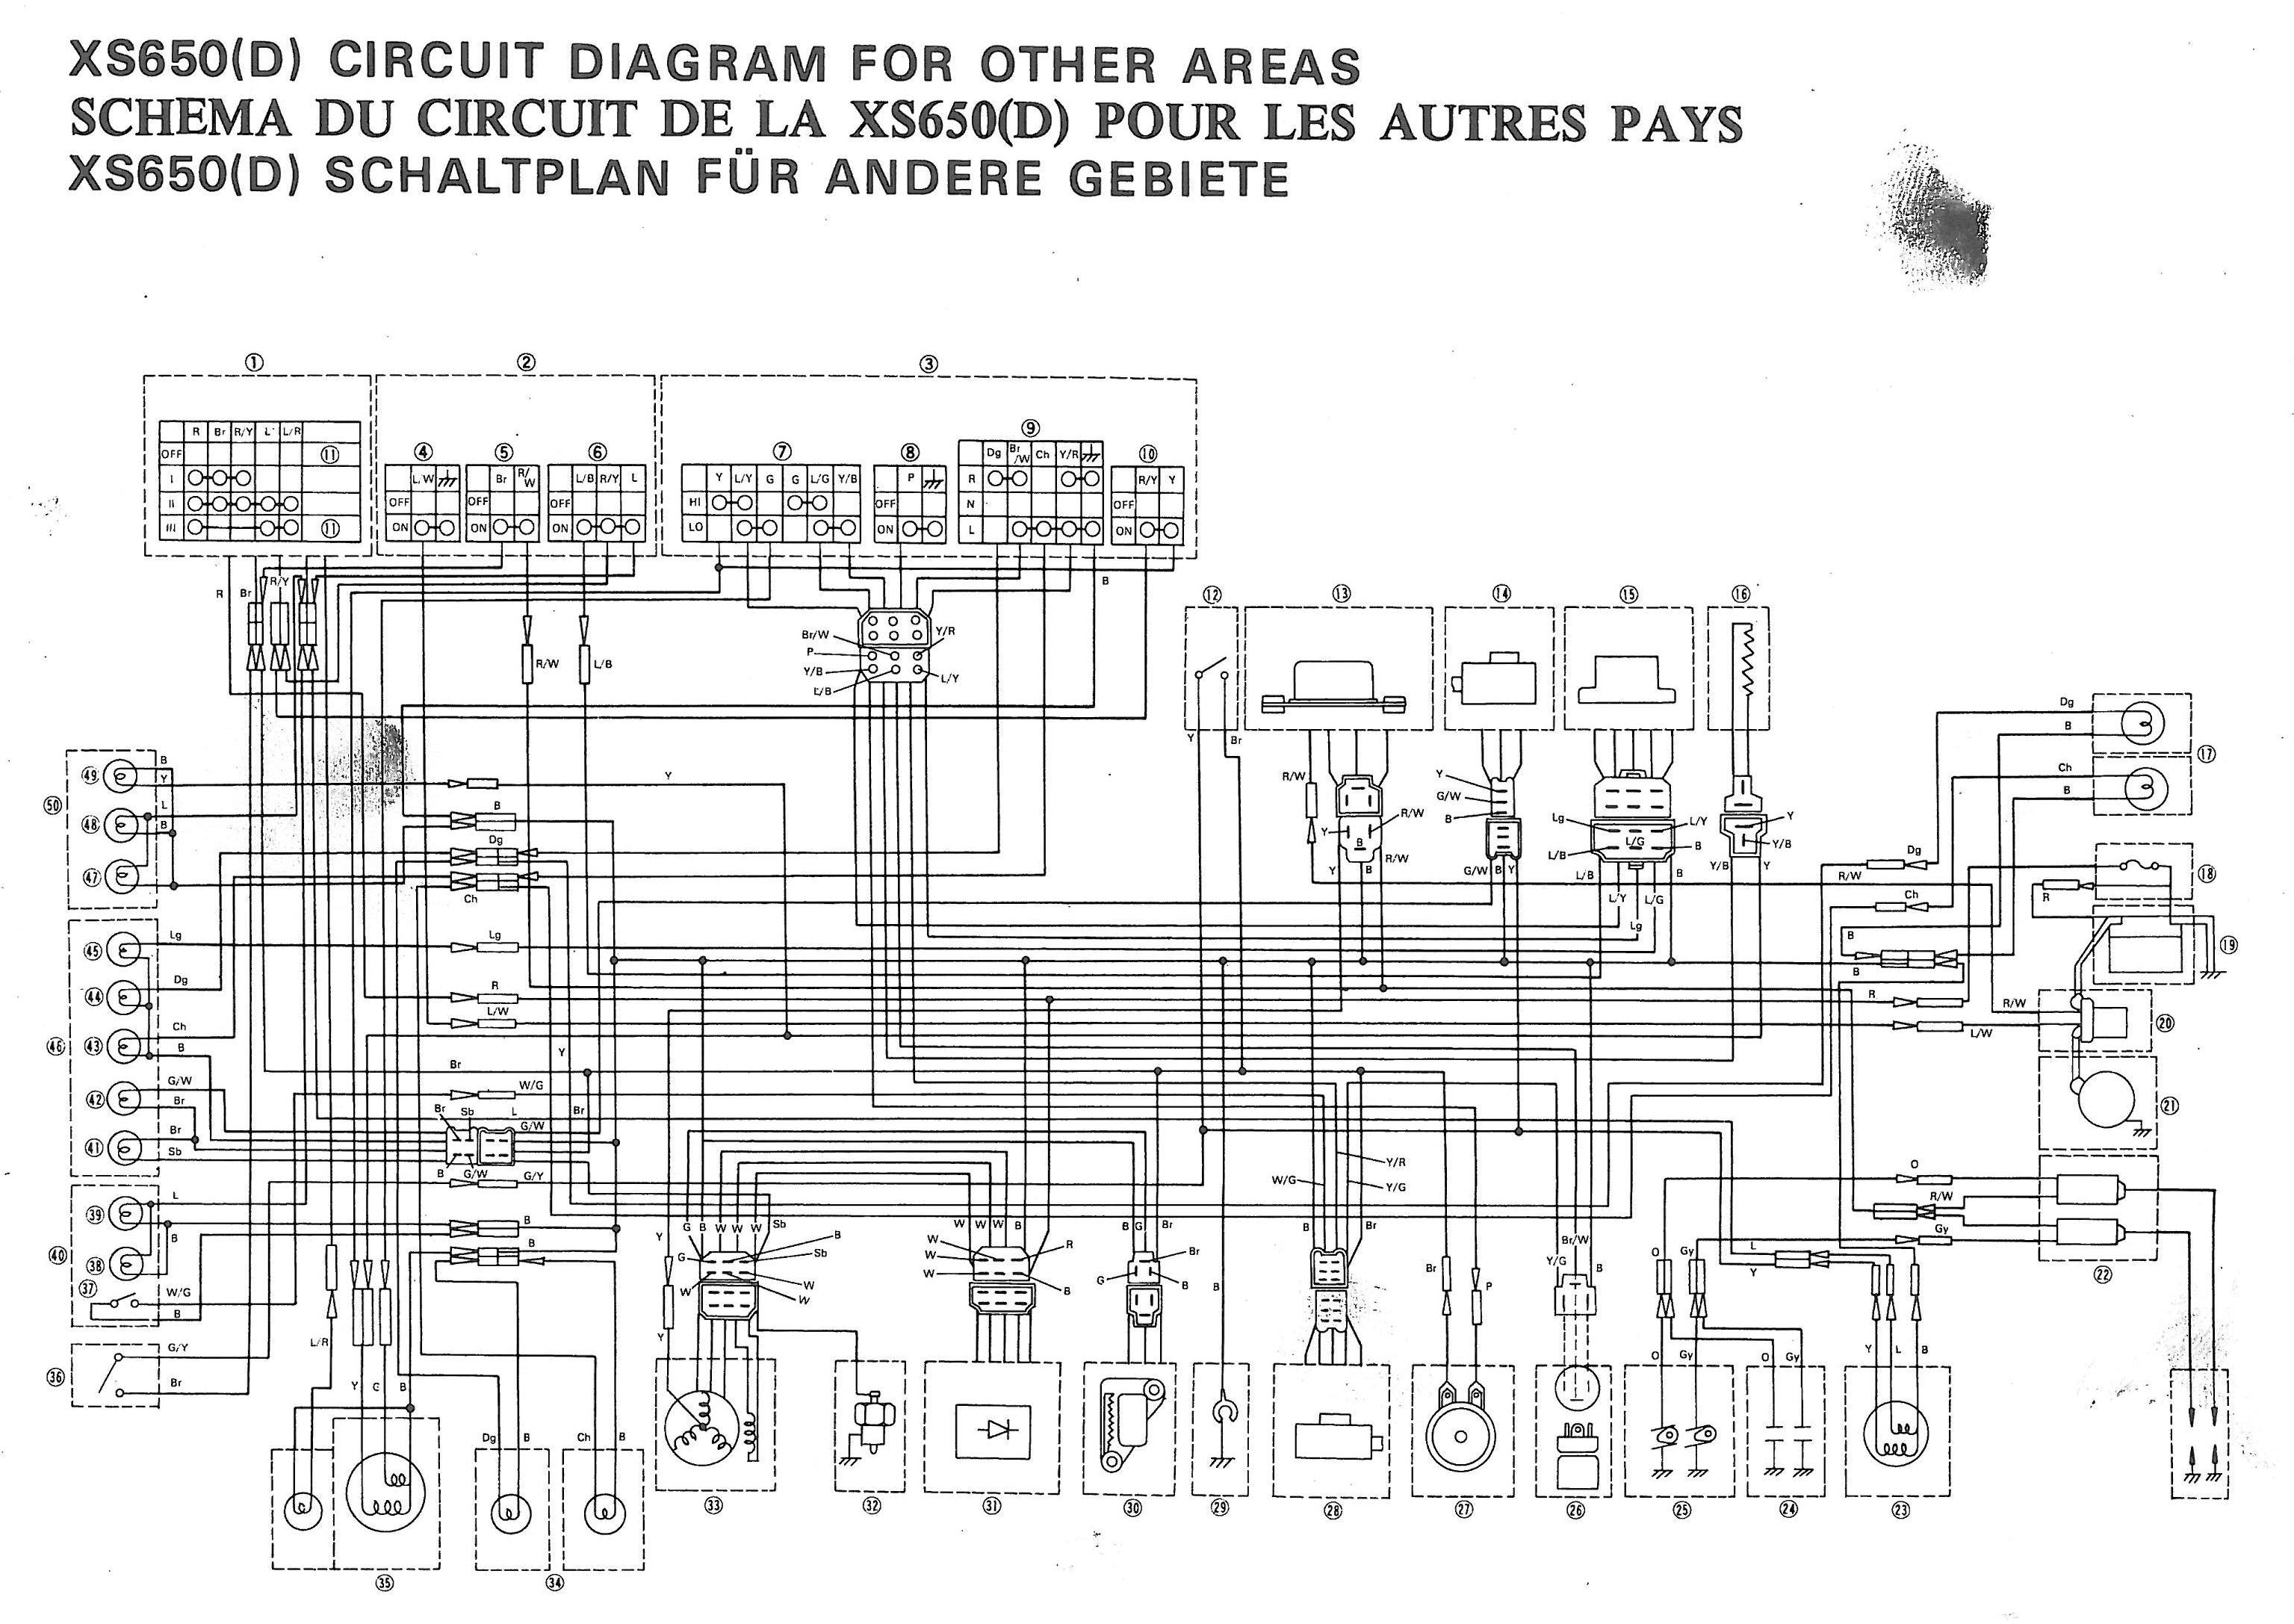 Comfortable Car Digram Tall Hot Rod Wiring Diagram Download Regular Remote Start Wiring Ibanez Guitar Pickups Youthful Stratocaster Hss Wiring PurpleTelecaster With 3 Pickups XS650: 77 XS D Wiring Diagram | Thexscafe